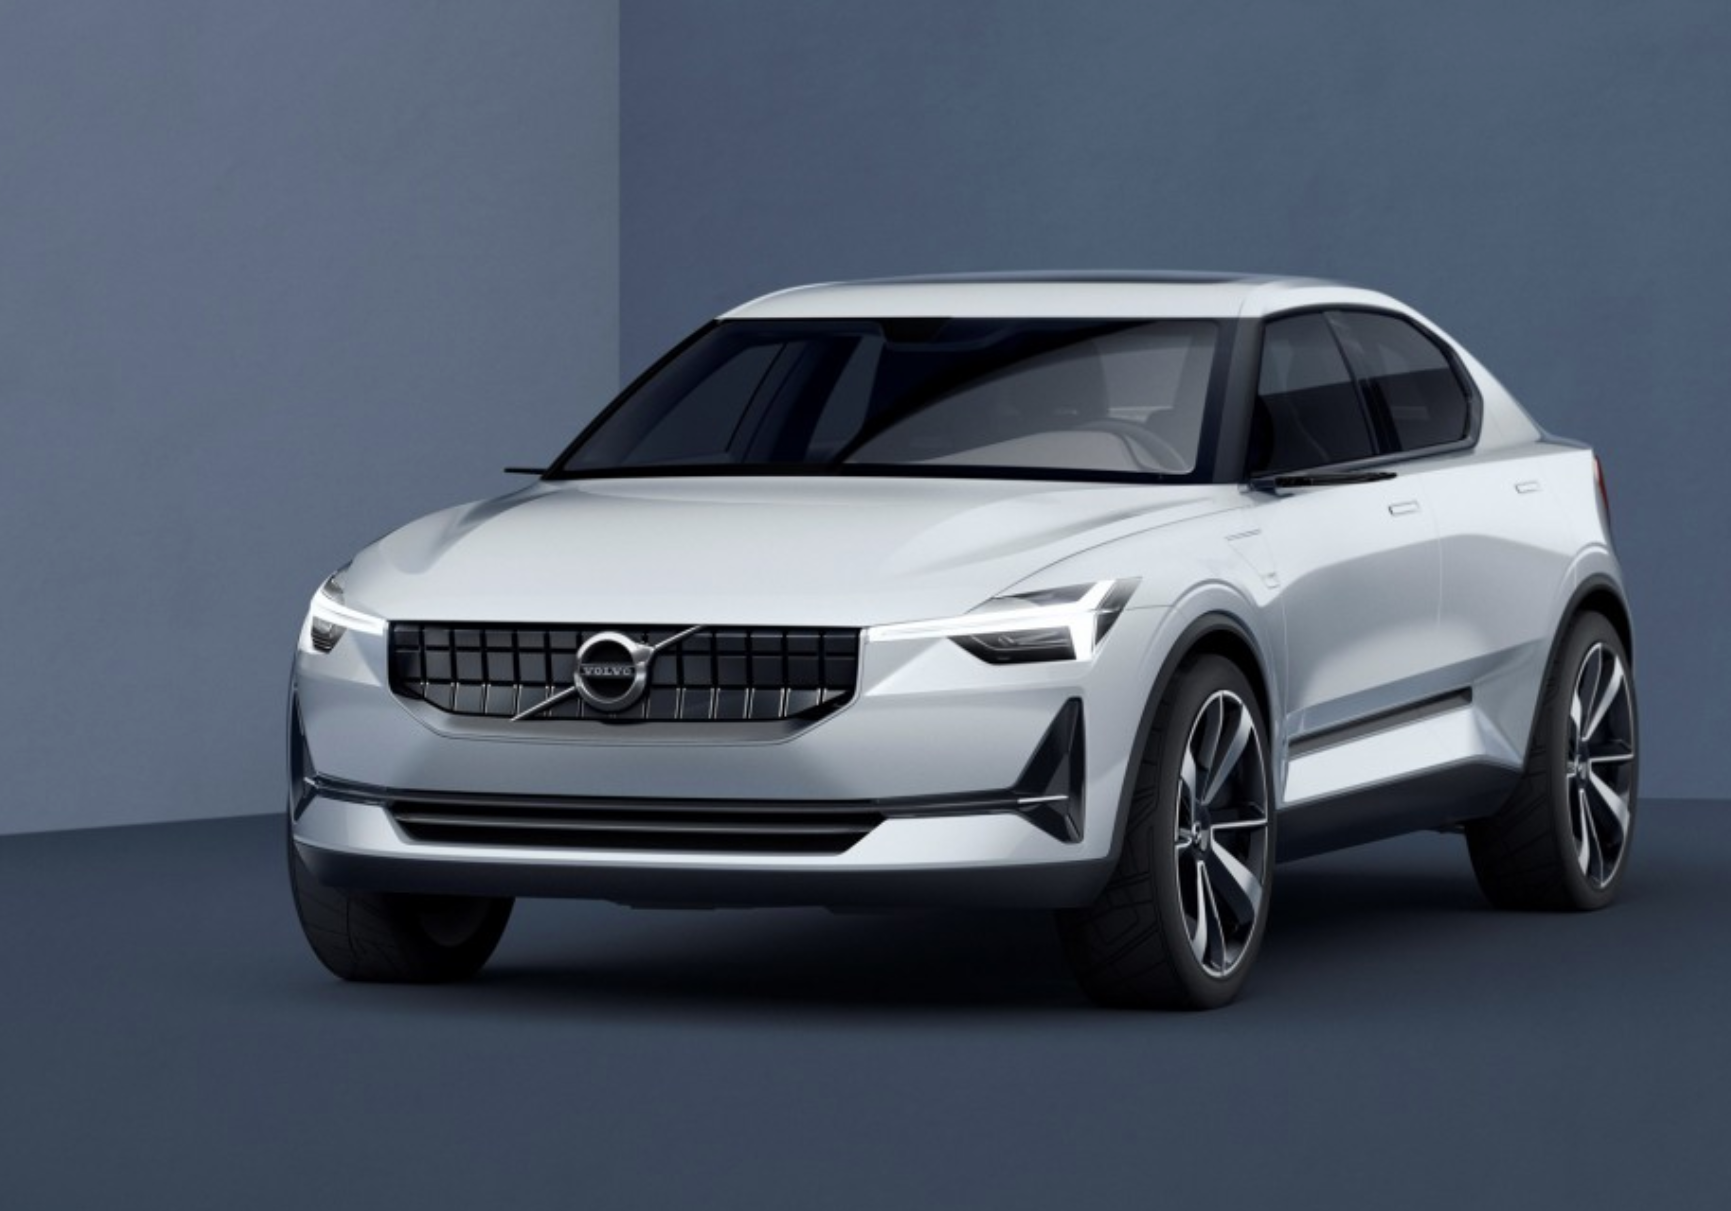 42 Best Review Volvo 2020 All Electric History for Volvo 2020 All Electric